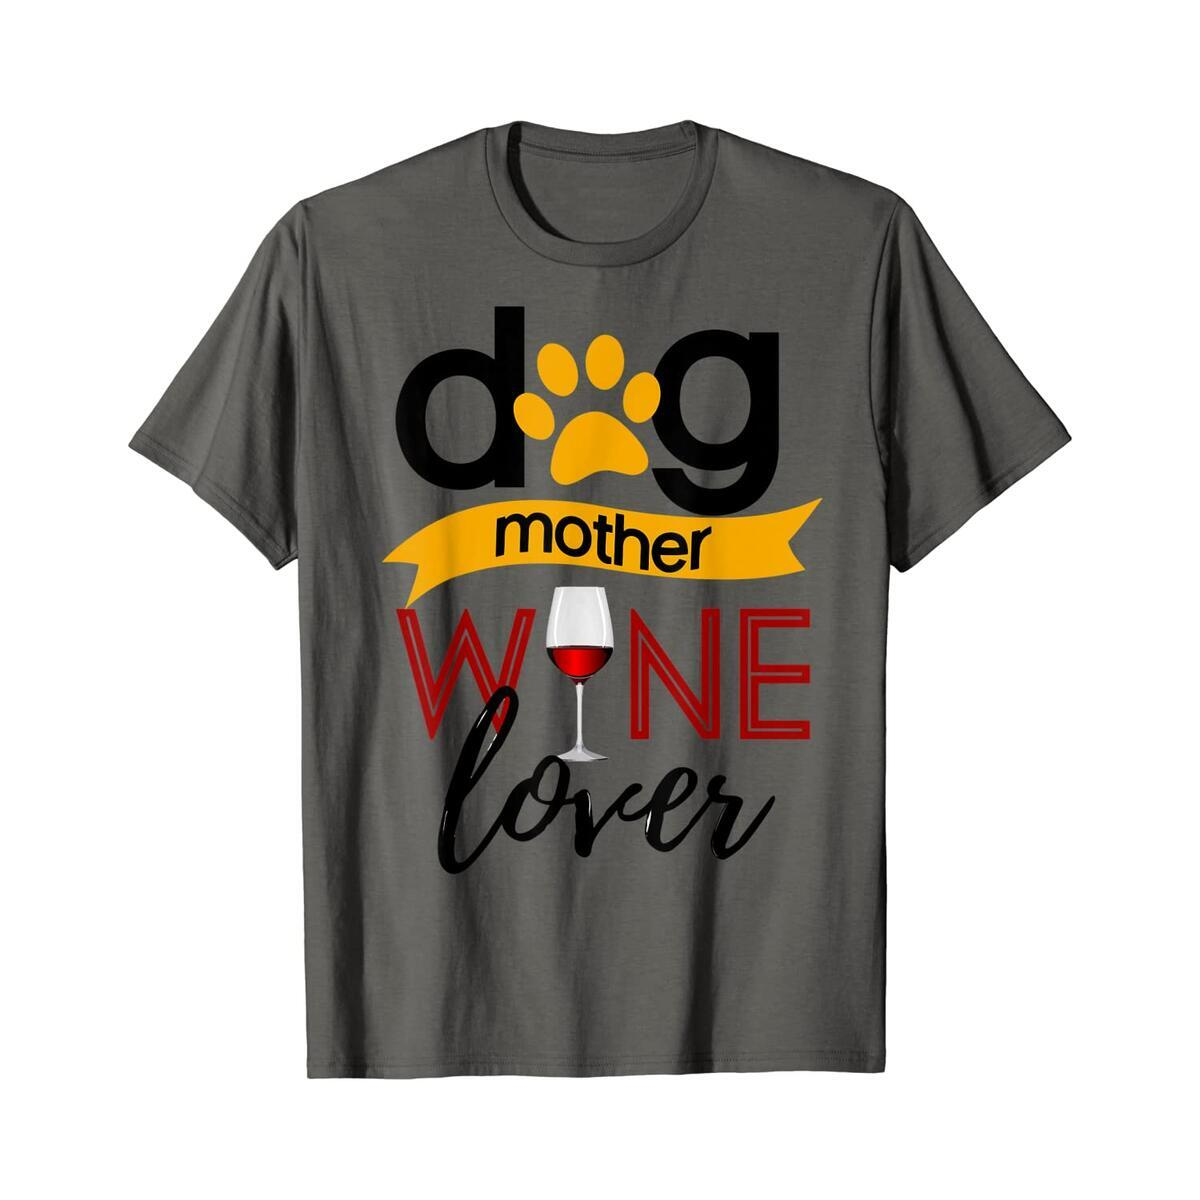 Dog Mother Wine Lover funny women's shirt (S-XL)